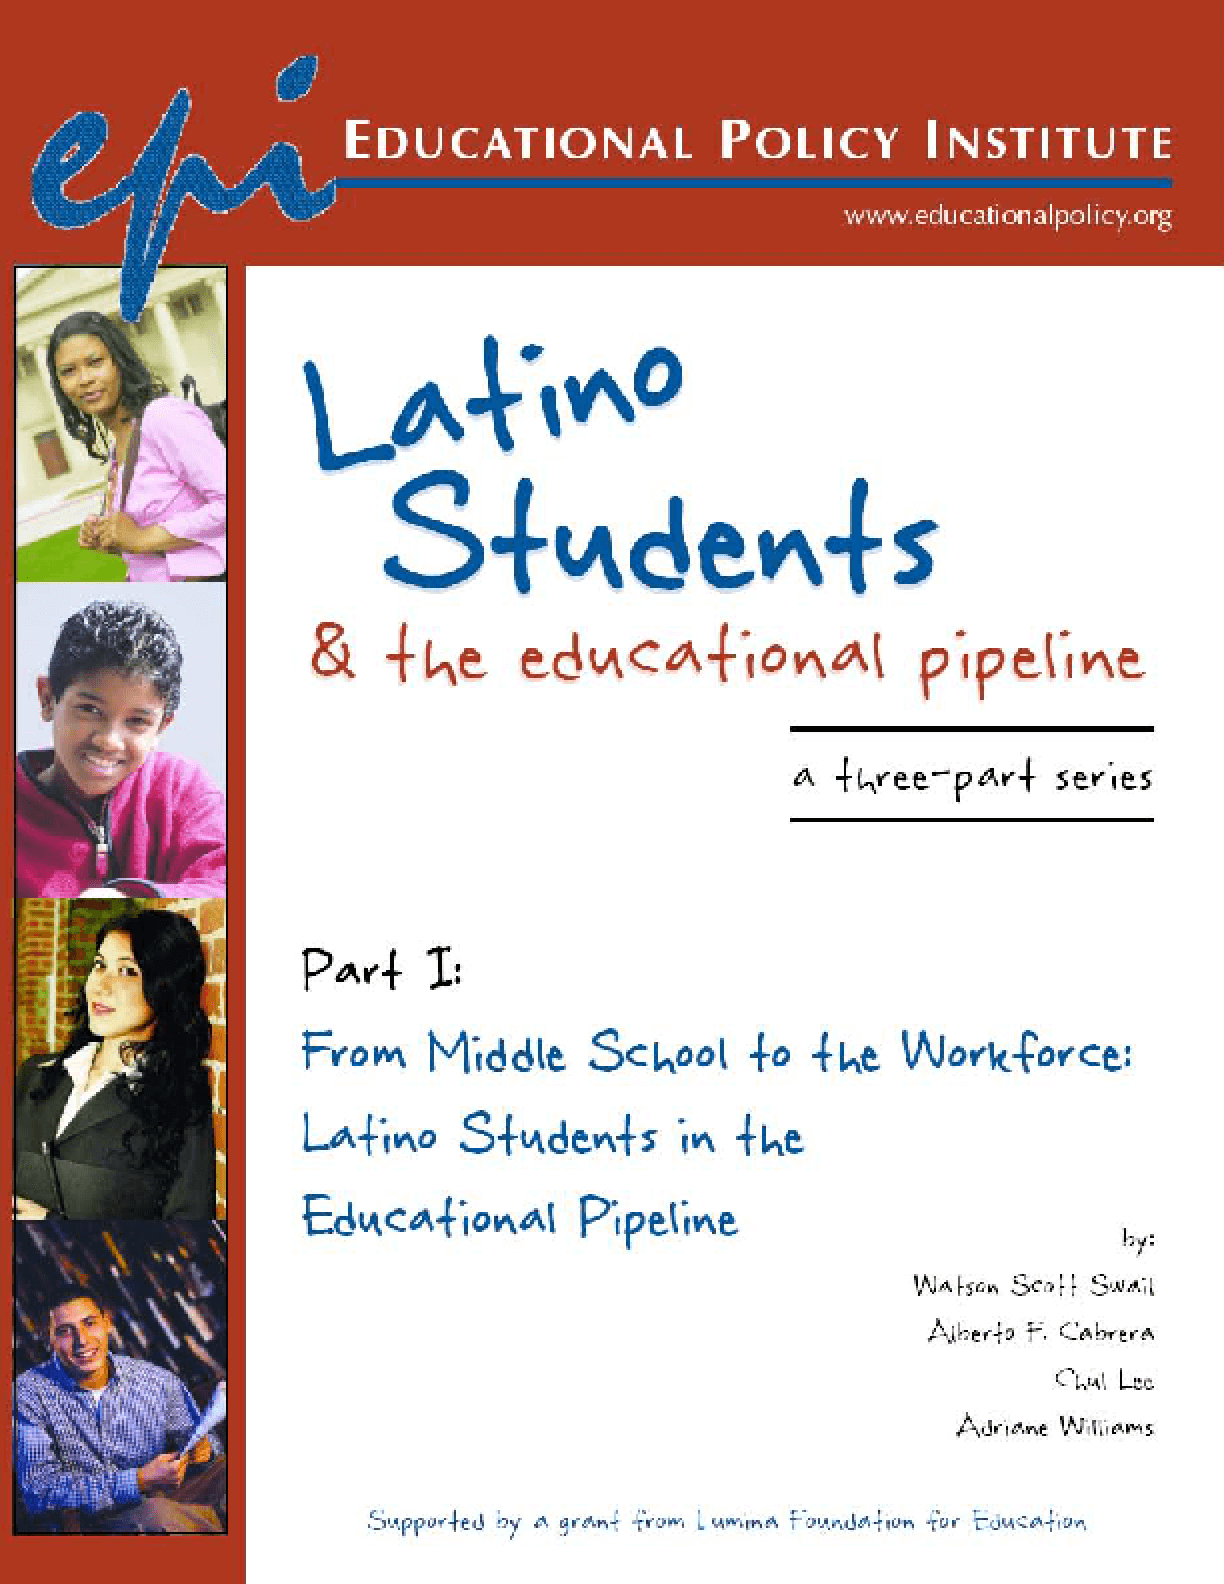 From Middle School to the Workforce: Latino Students in the Educational Pipeline